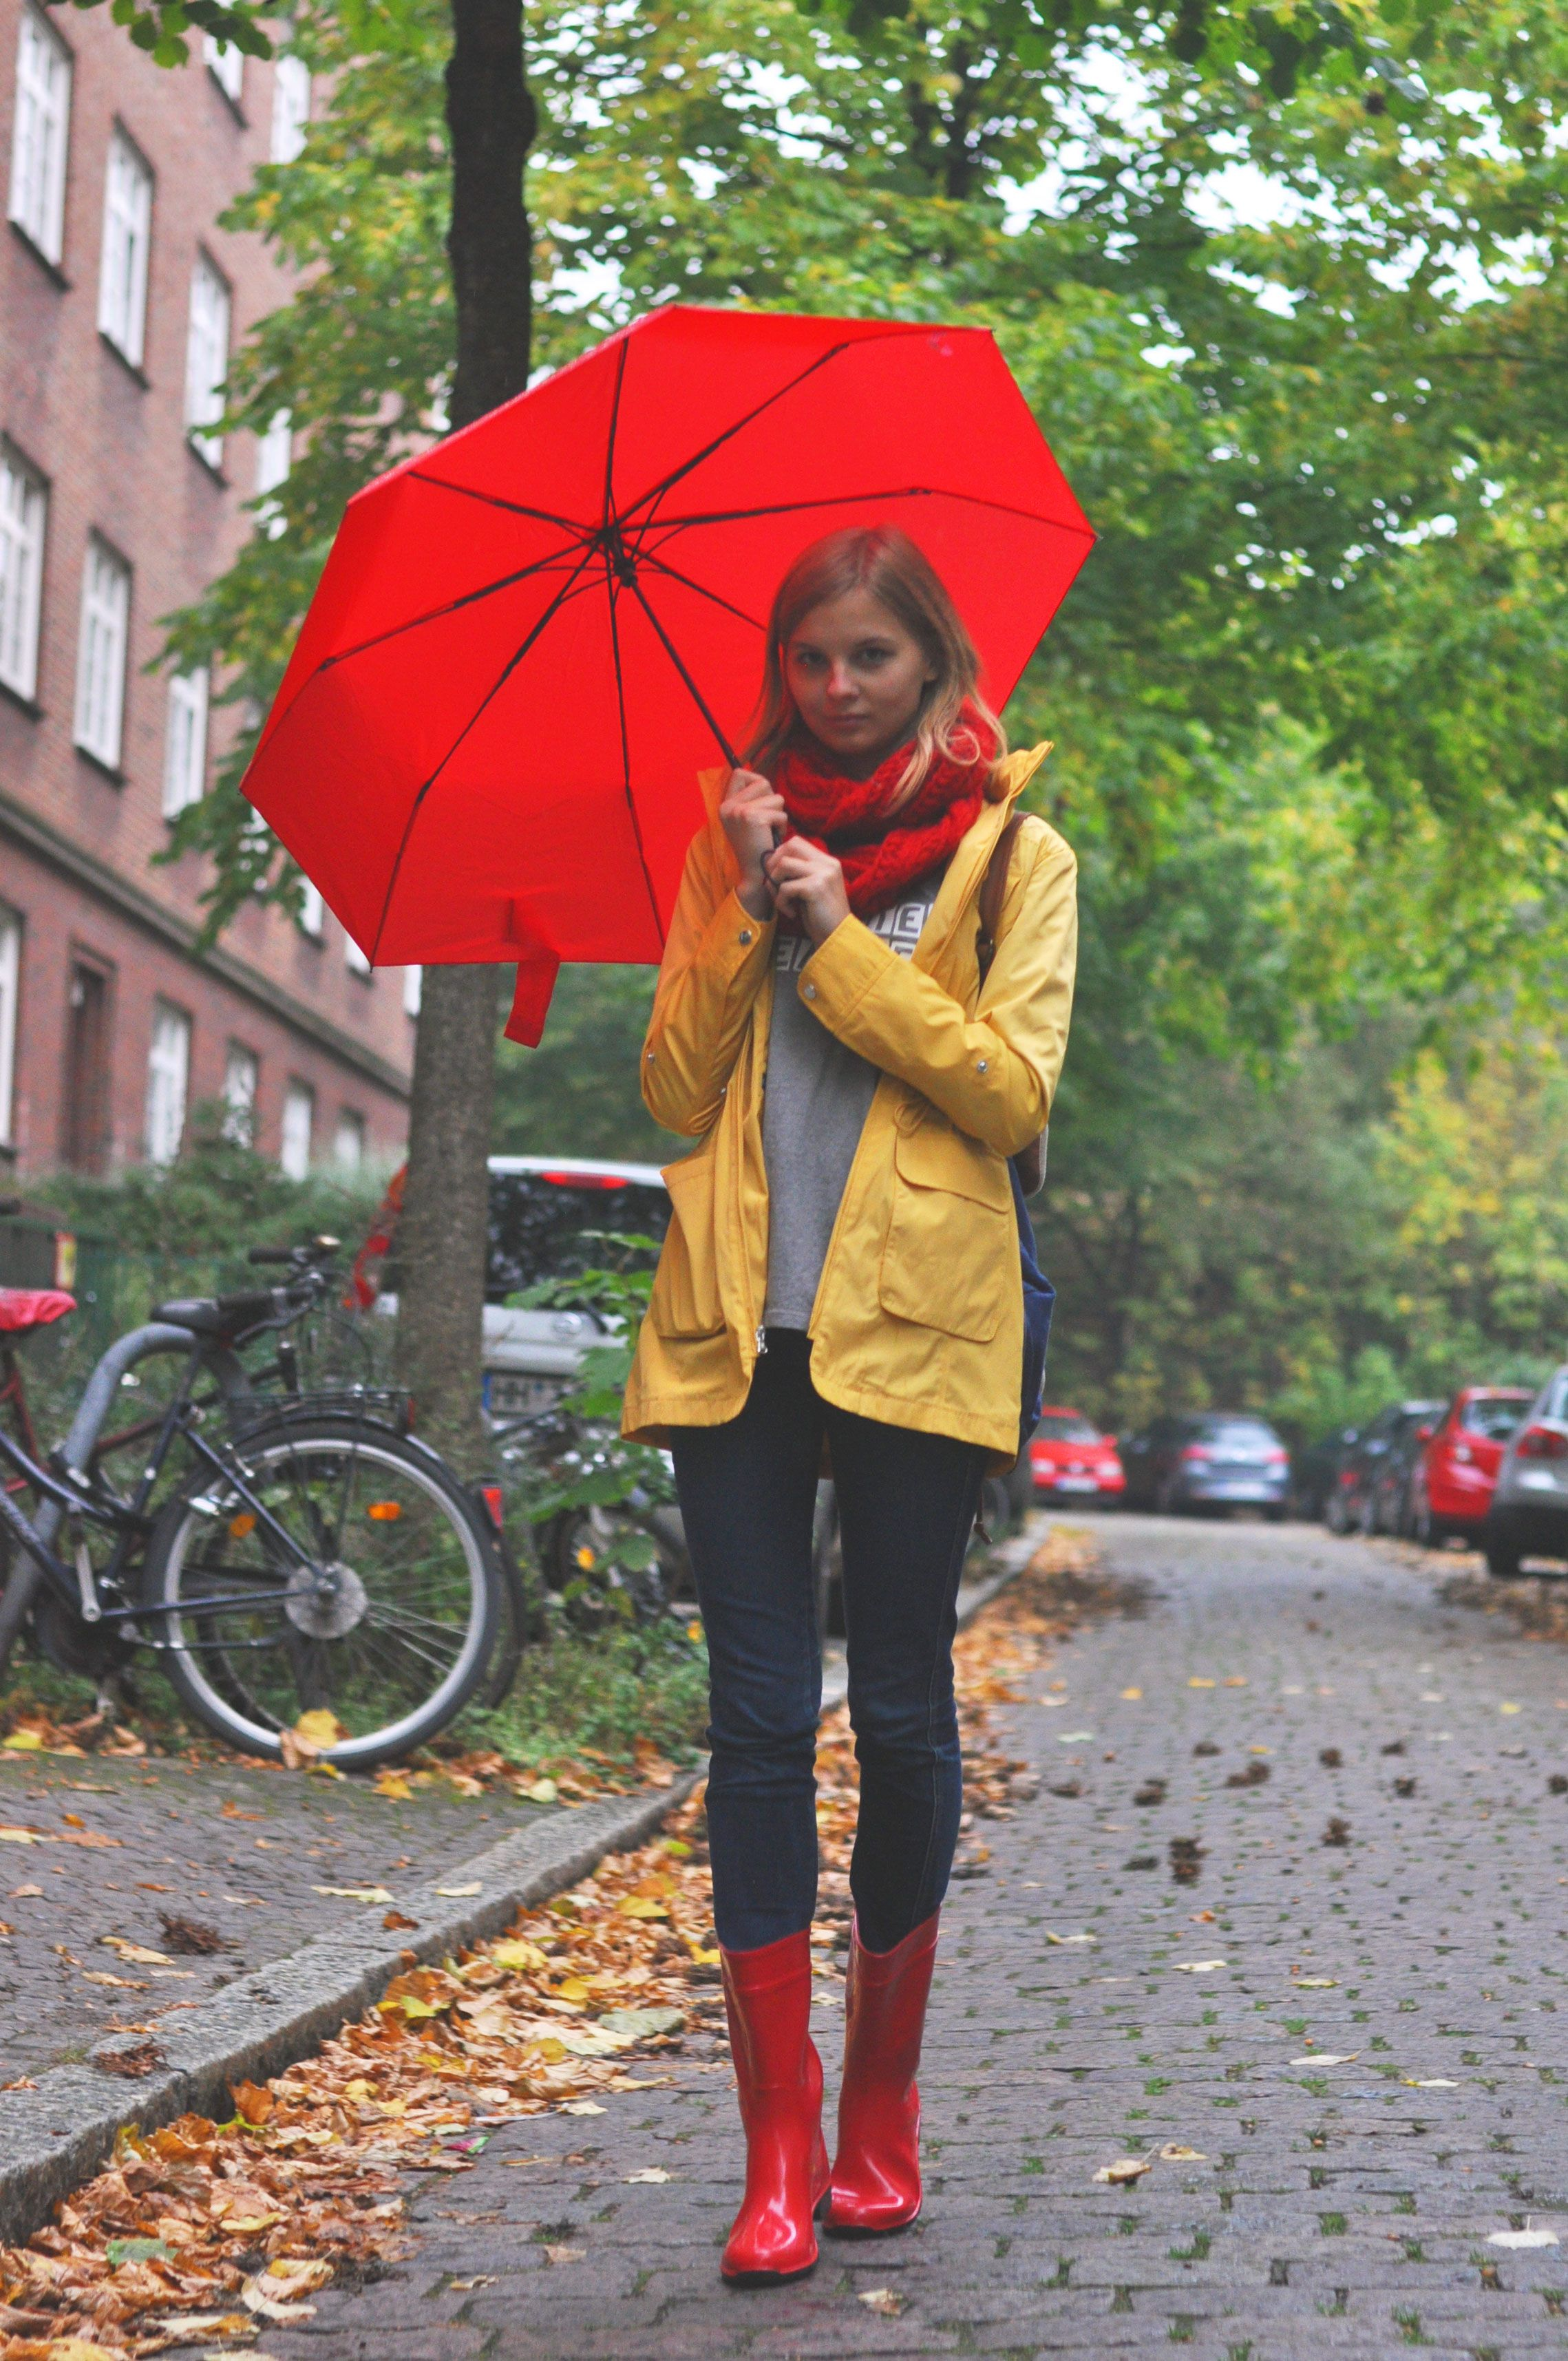 Style for Rainy Days: Red Umbrella, yellow raincoat, red scarf ...